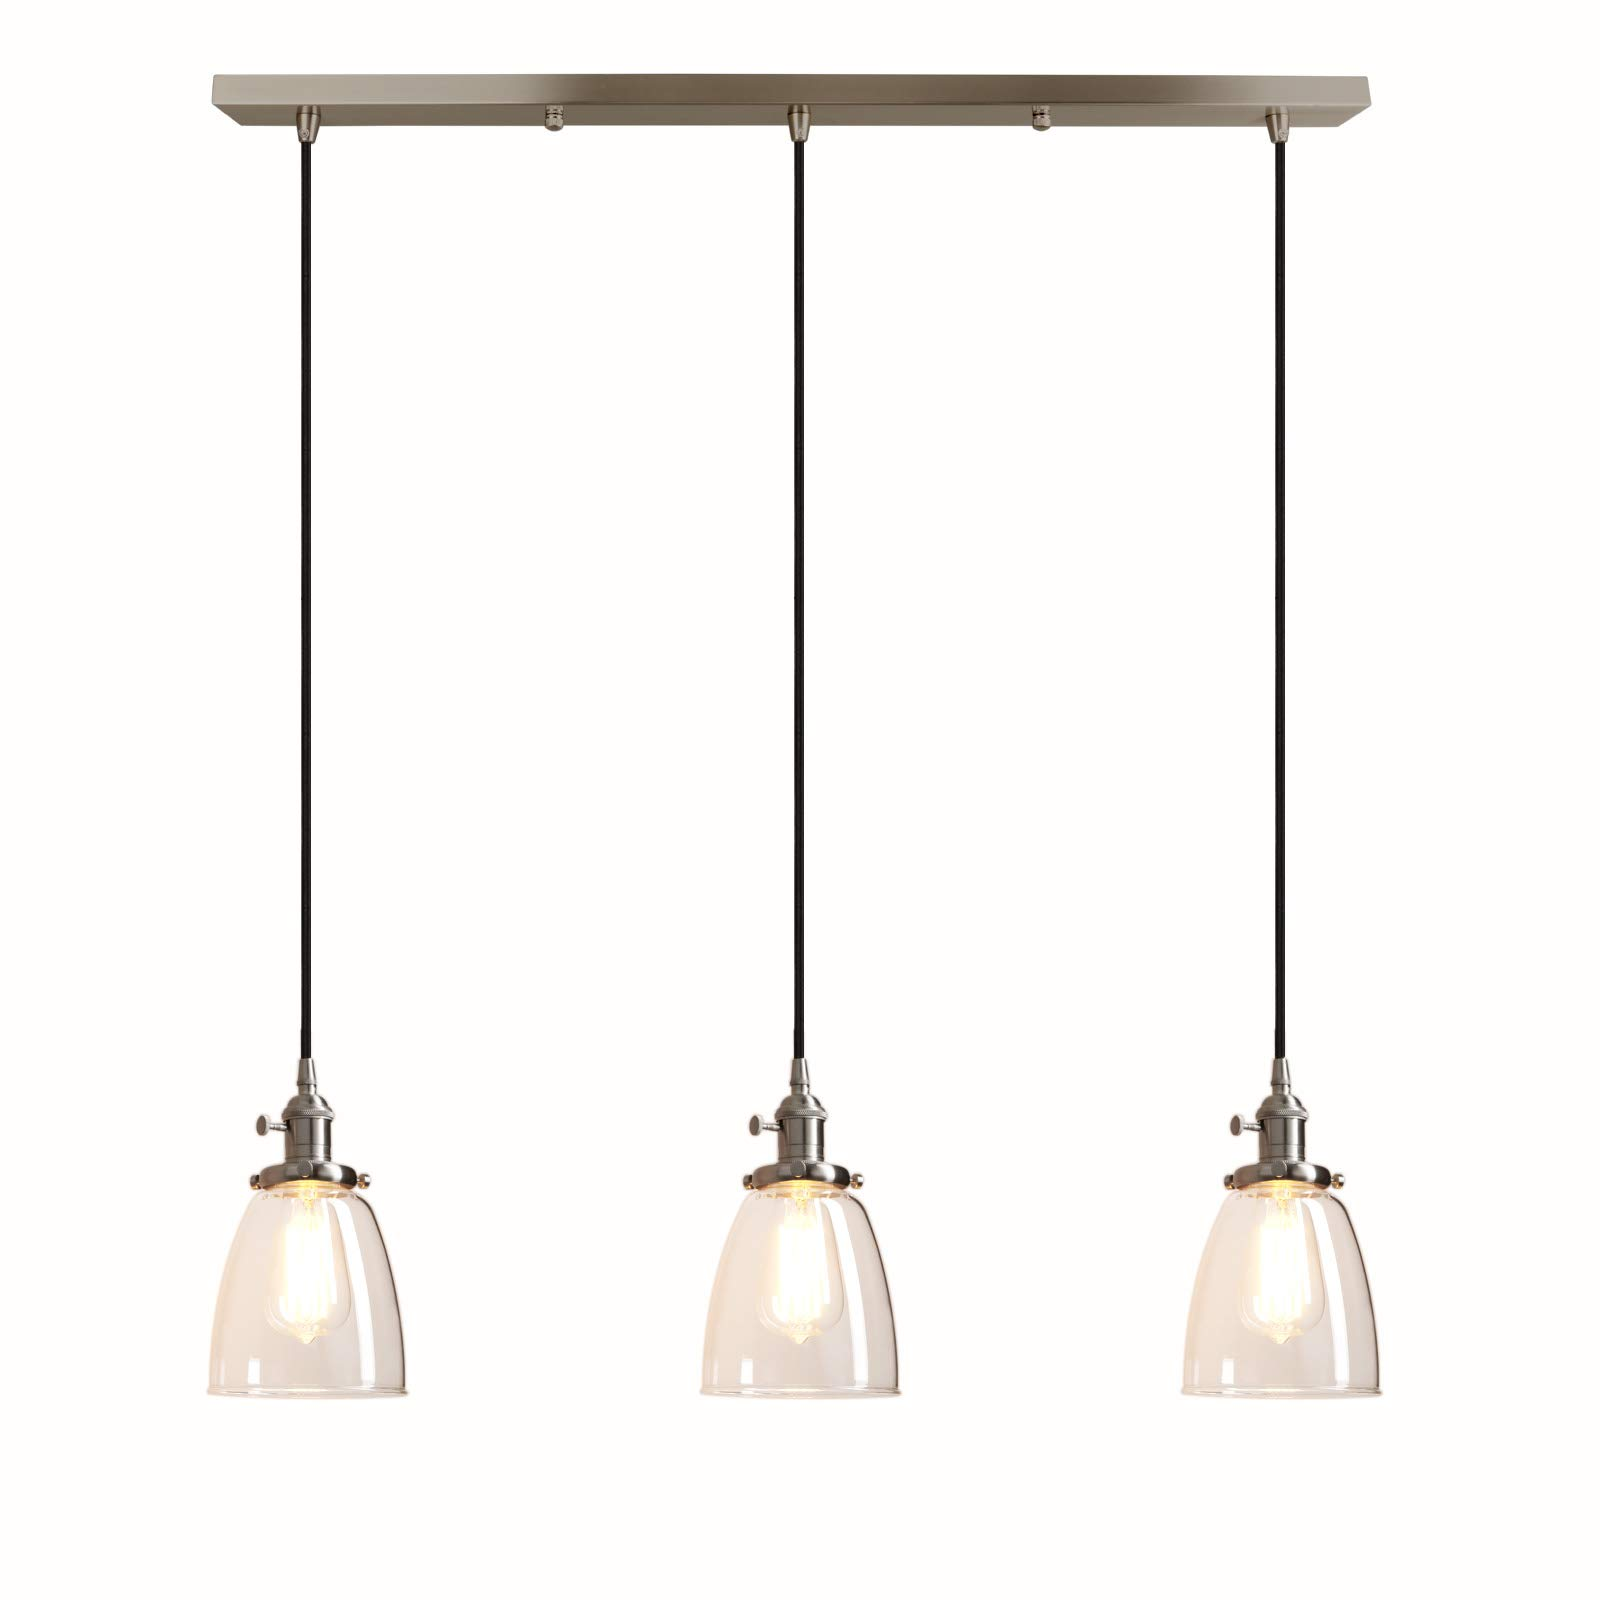 Pathson Industrial 3-Light Pendant Lighting Kitchen Island Hanging Lamps with Oval Clear Glass Shade Chandelier Ceiling Light Fixture (Brushed Steel) by Pathson (Image #1)